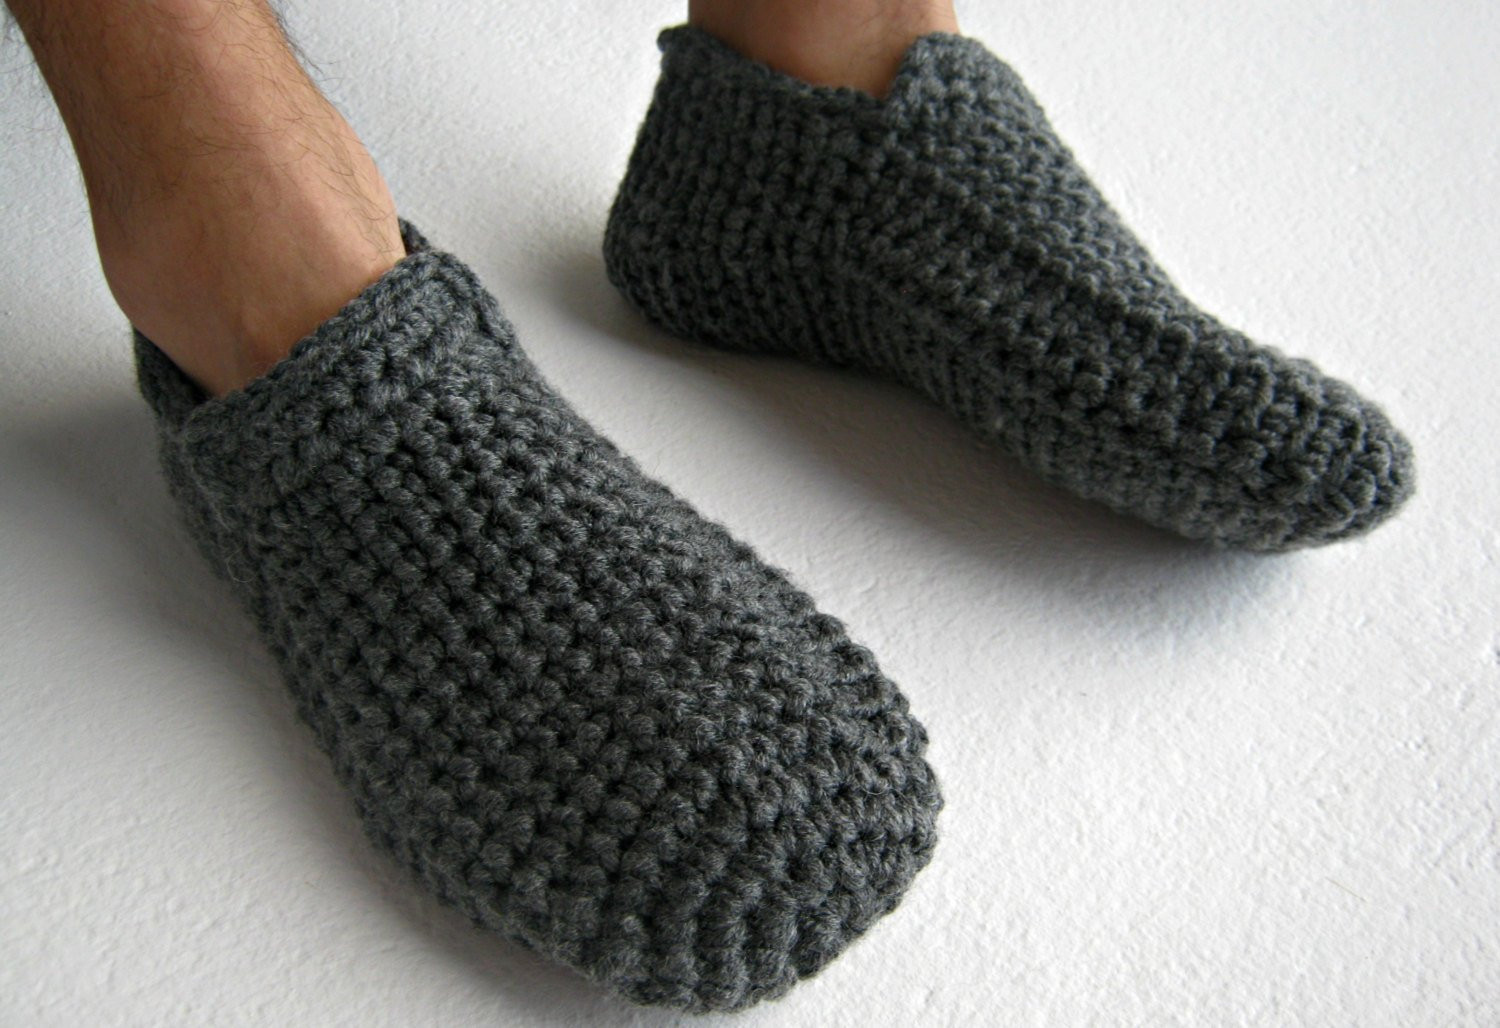 Crochet Slipper socks Elegant Crochet Slippers Gray Slippers Warm Slippers Slipper socks Of Charming 47 Photos Crochet Slipper socks